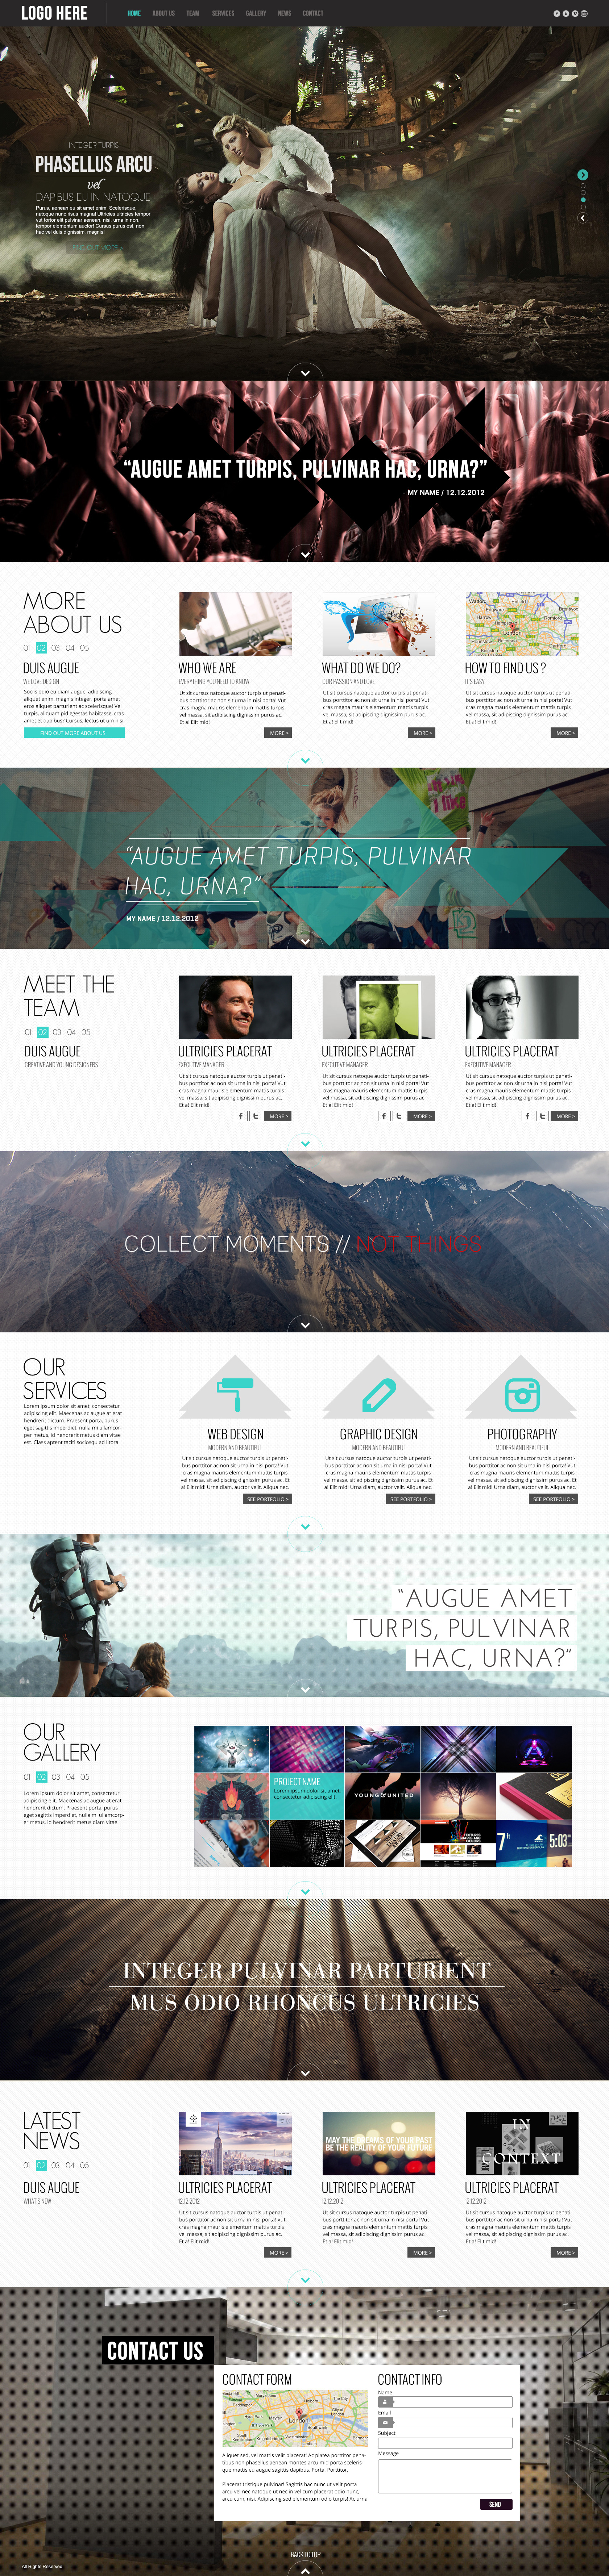 Pulsar - One Page HTML5 Parallax Website Template by AVAThemes ...